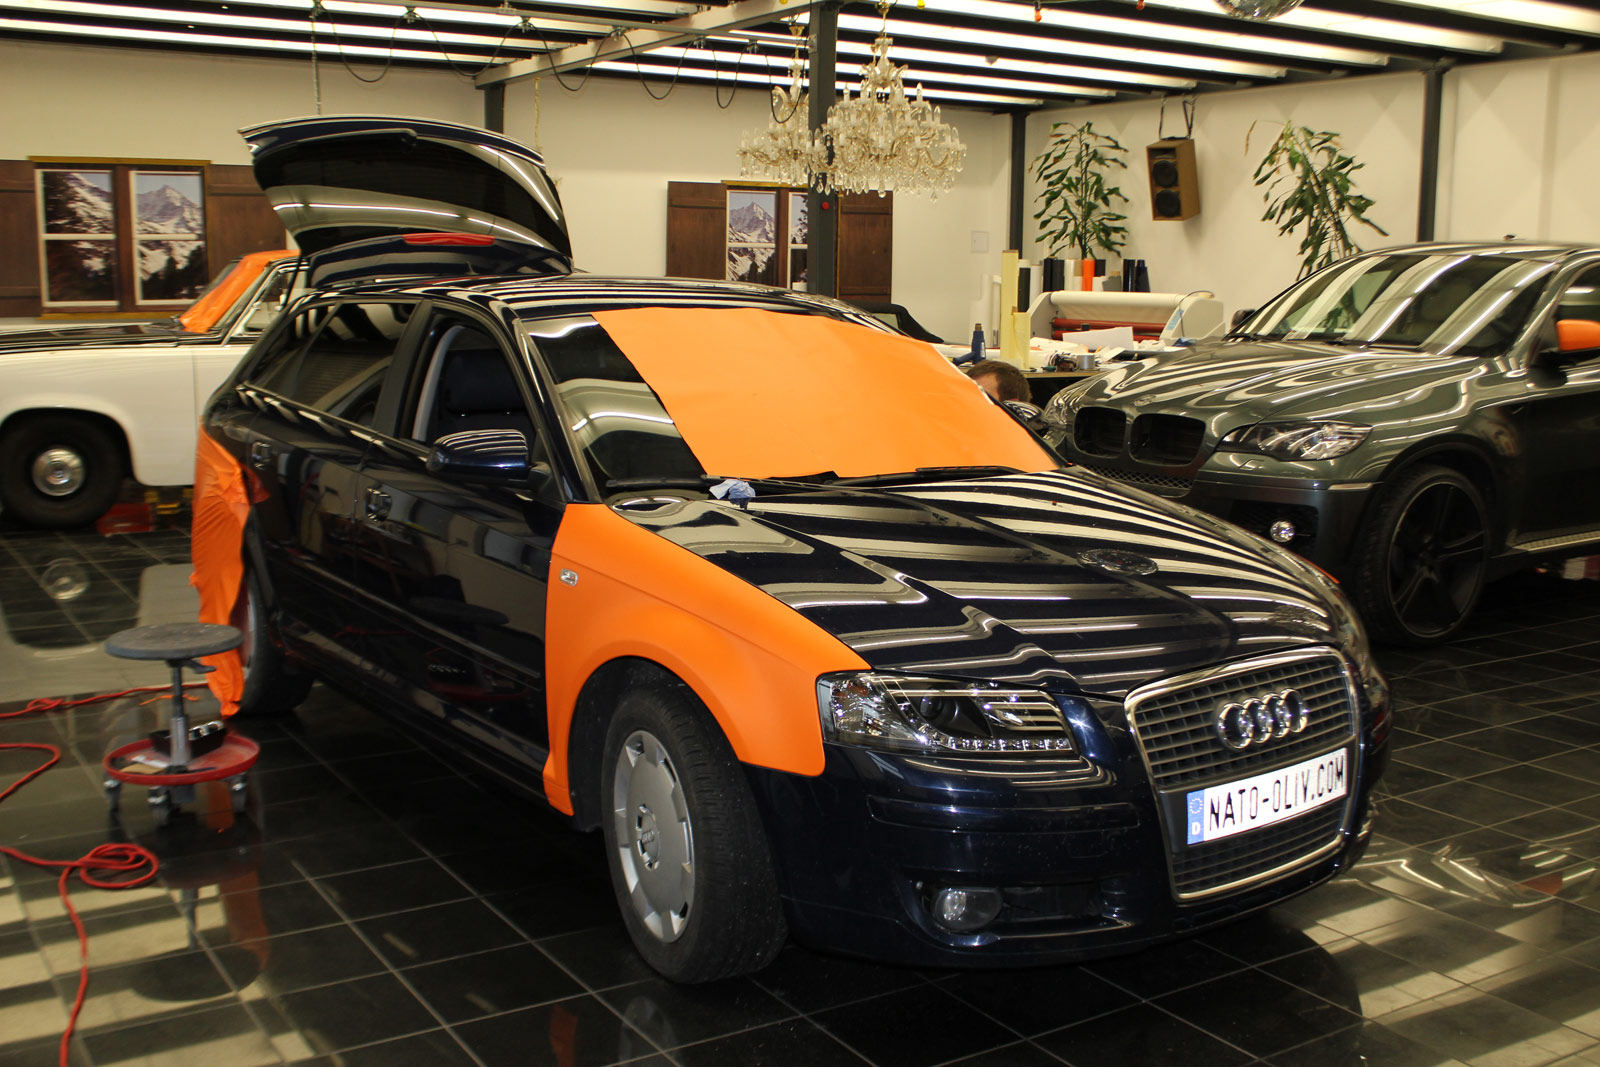 Audi_A3_Sportsback_Beklebung_Orange_Matt_05